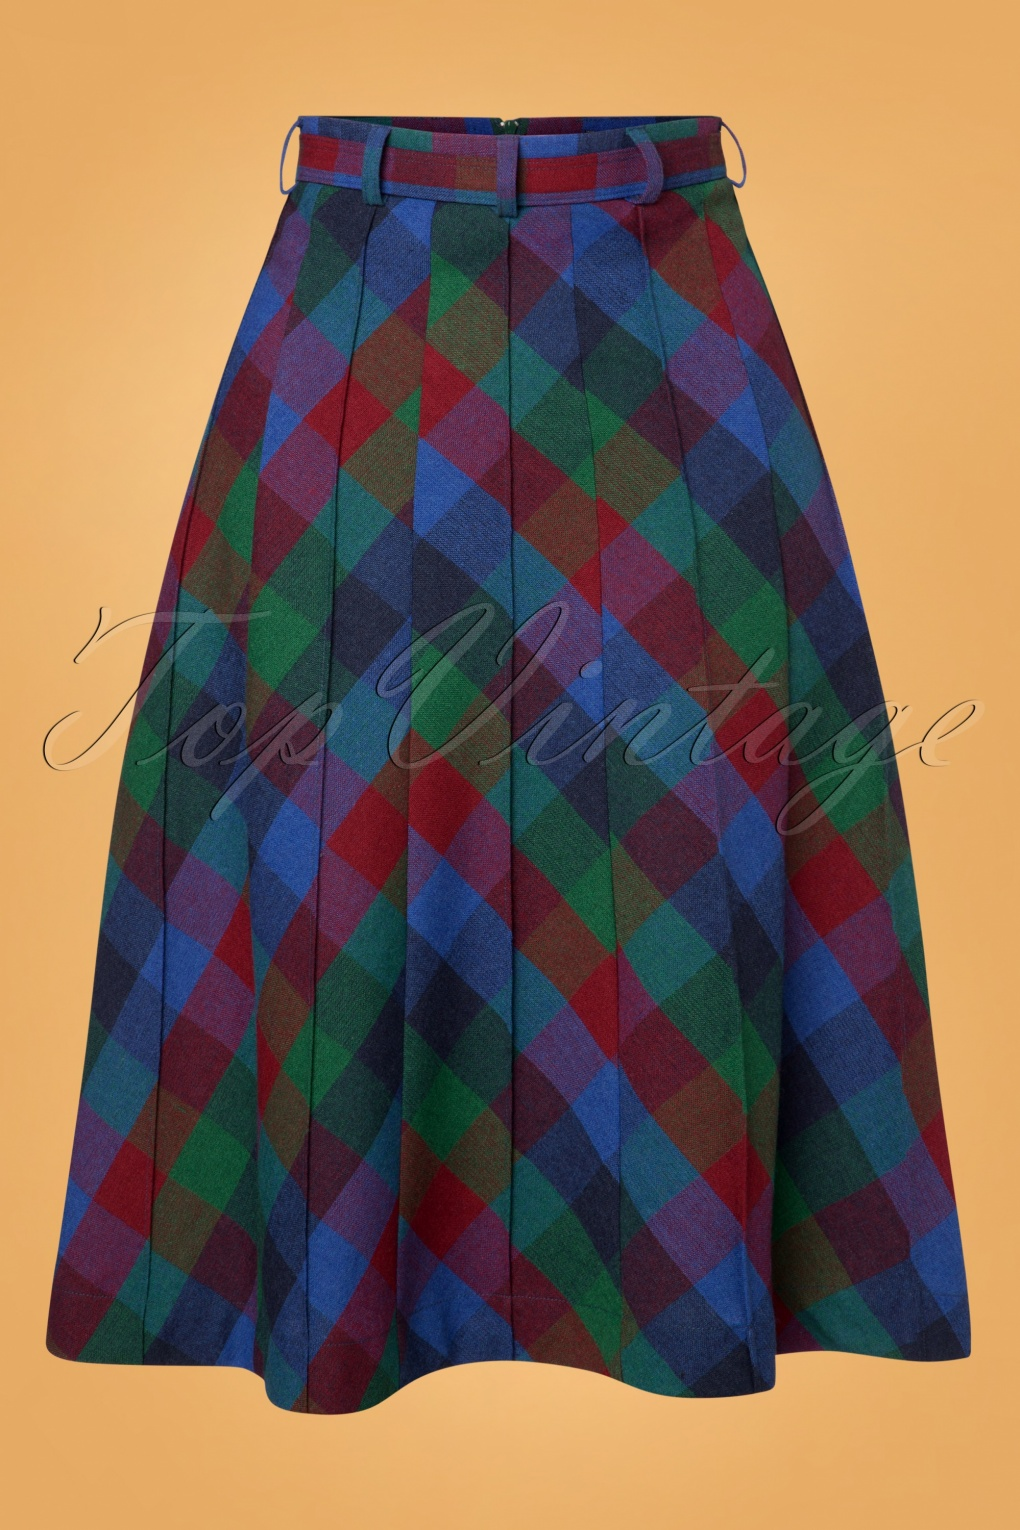 1940s Style Skirts- Vintage High Waisted Skirts 40s Harper Cornel Check Wool Skirt in Dutch Blue £80.35 AT vintagedancer.com